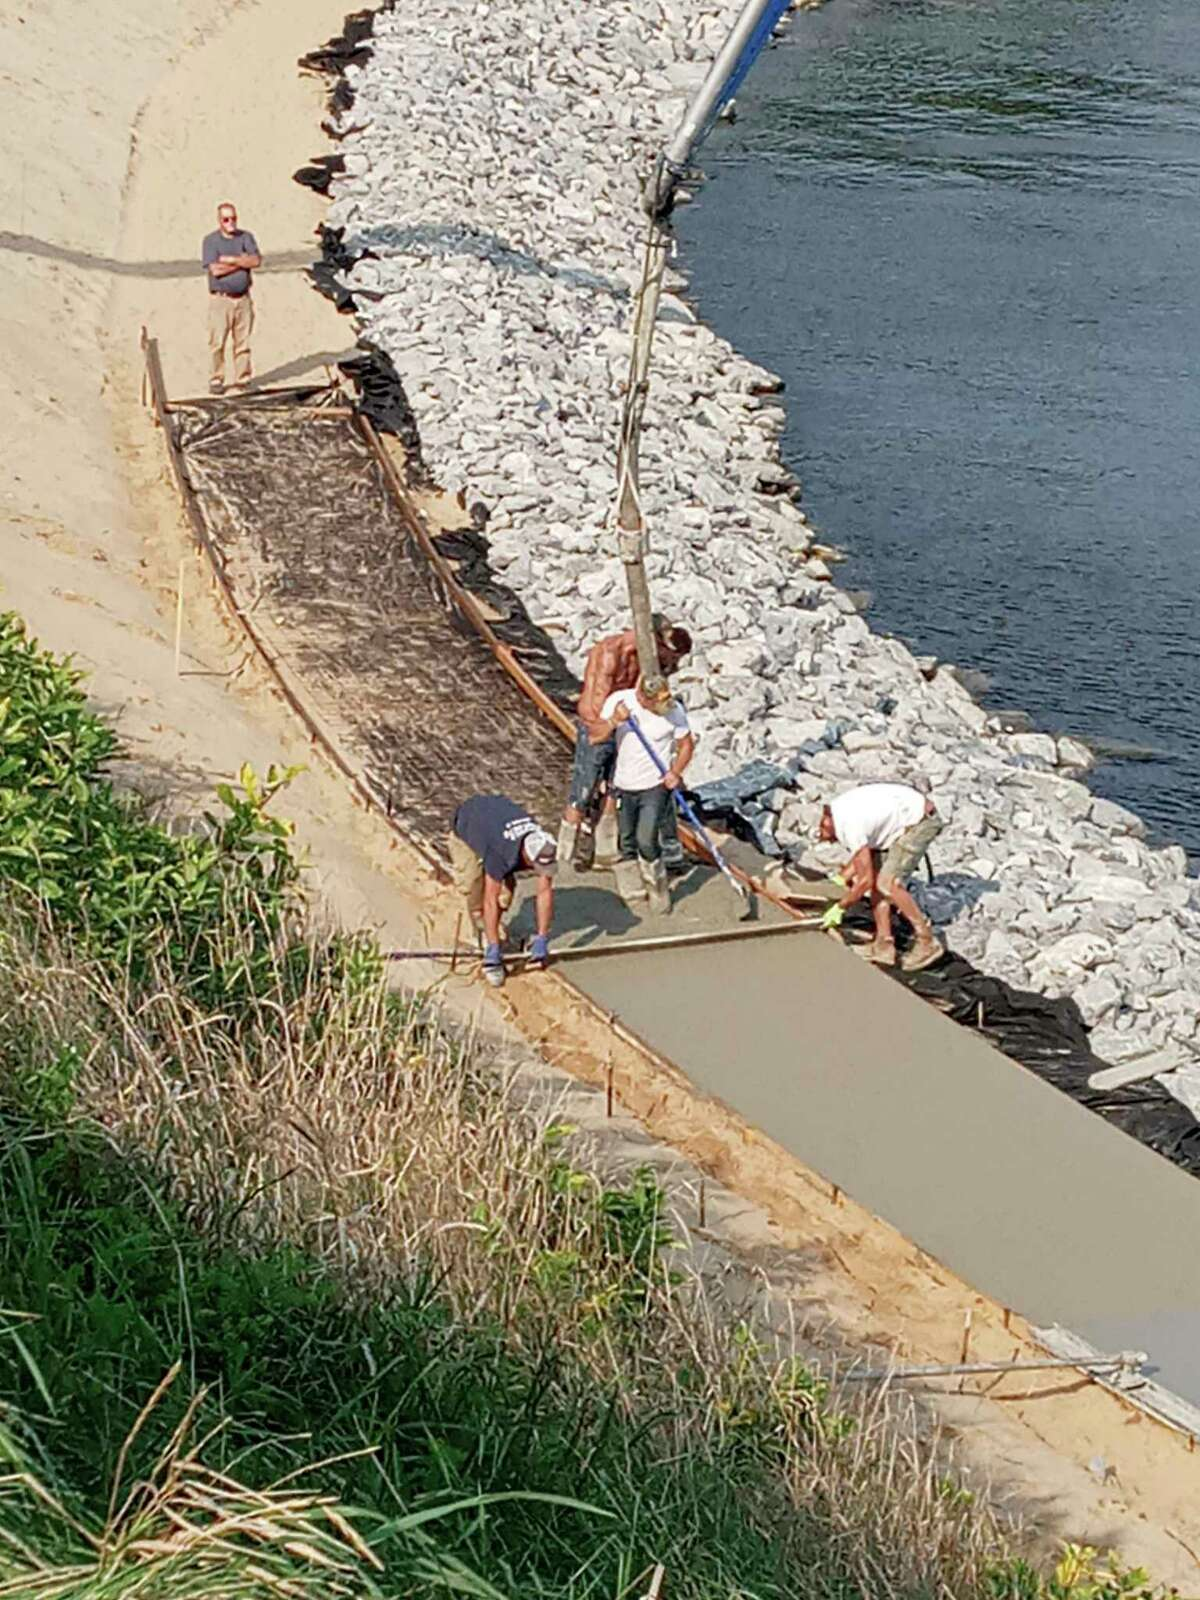 Workers work on the sidewalk of the riverwalk on Cherry and First streets on Friday; 90% of the sidewalk has been poured. The construction is part of ongoing efforts to repair parts of the Riverwalk damaged by erosion. (Courtesy Photo)